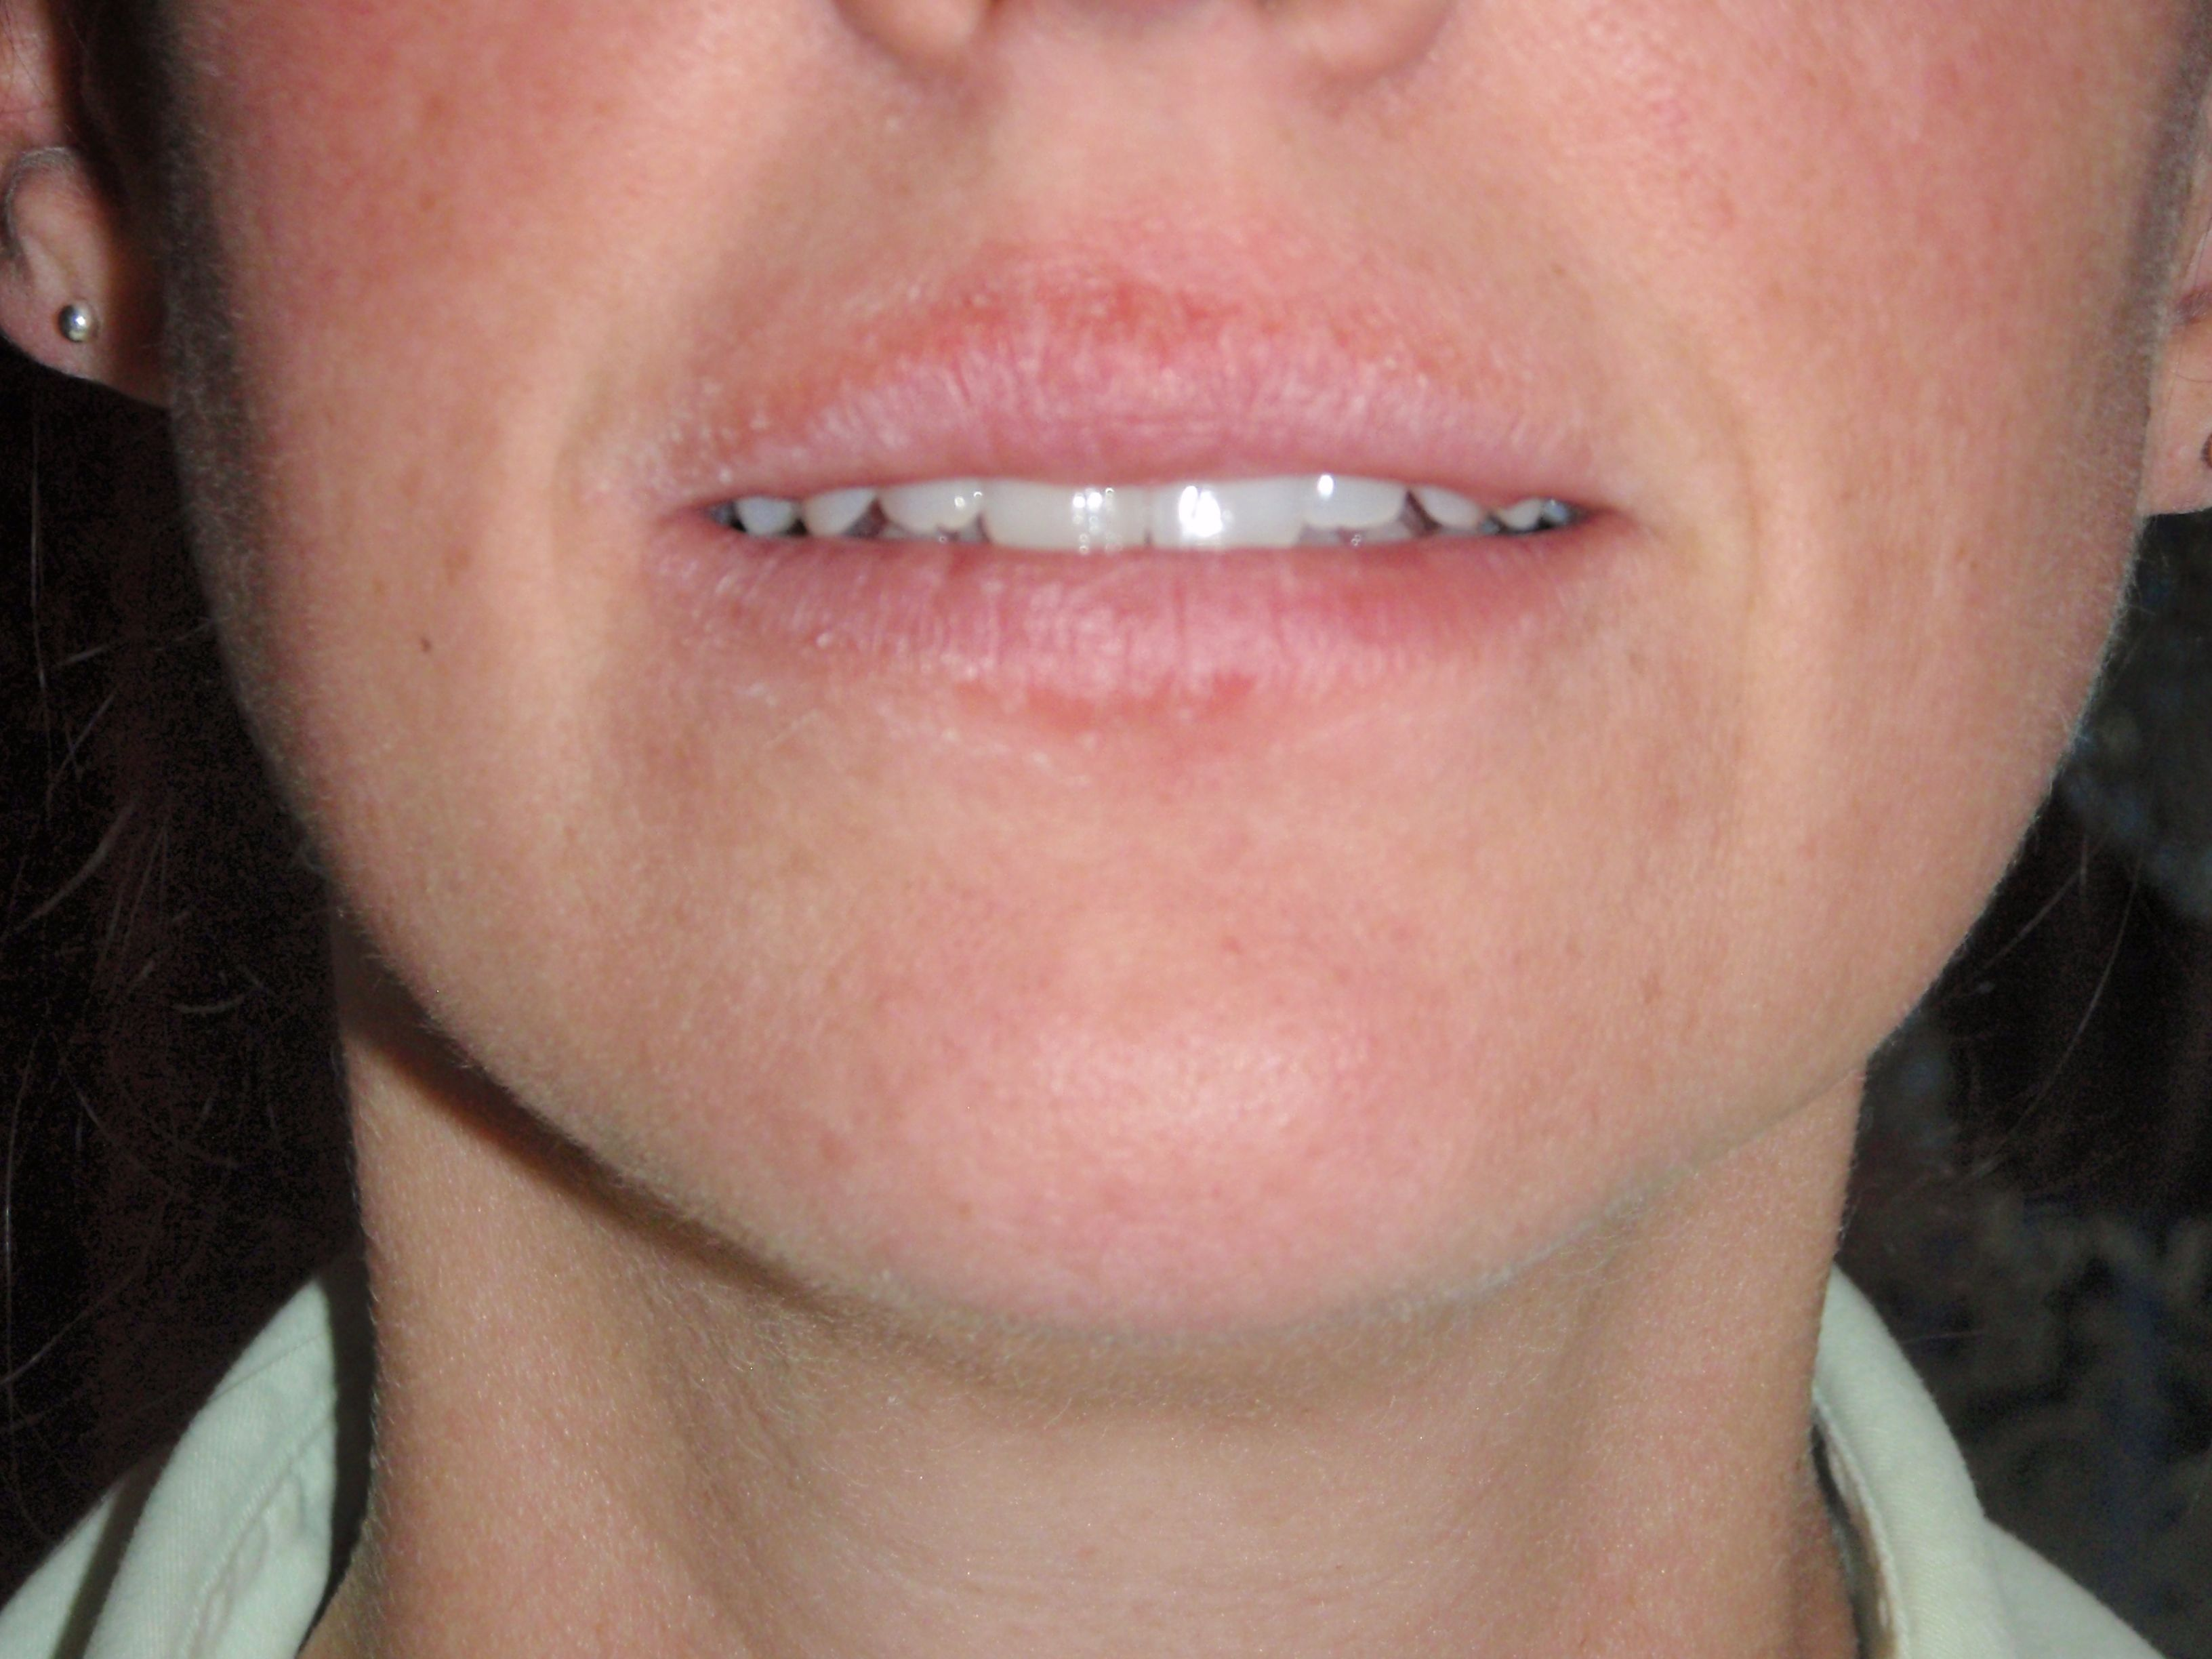 Lip Rash And Rashes Around The Mouth Can Be Caused By Many